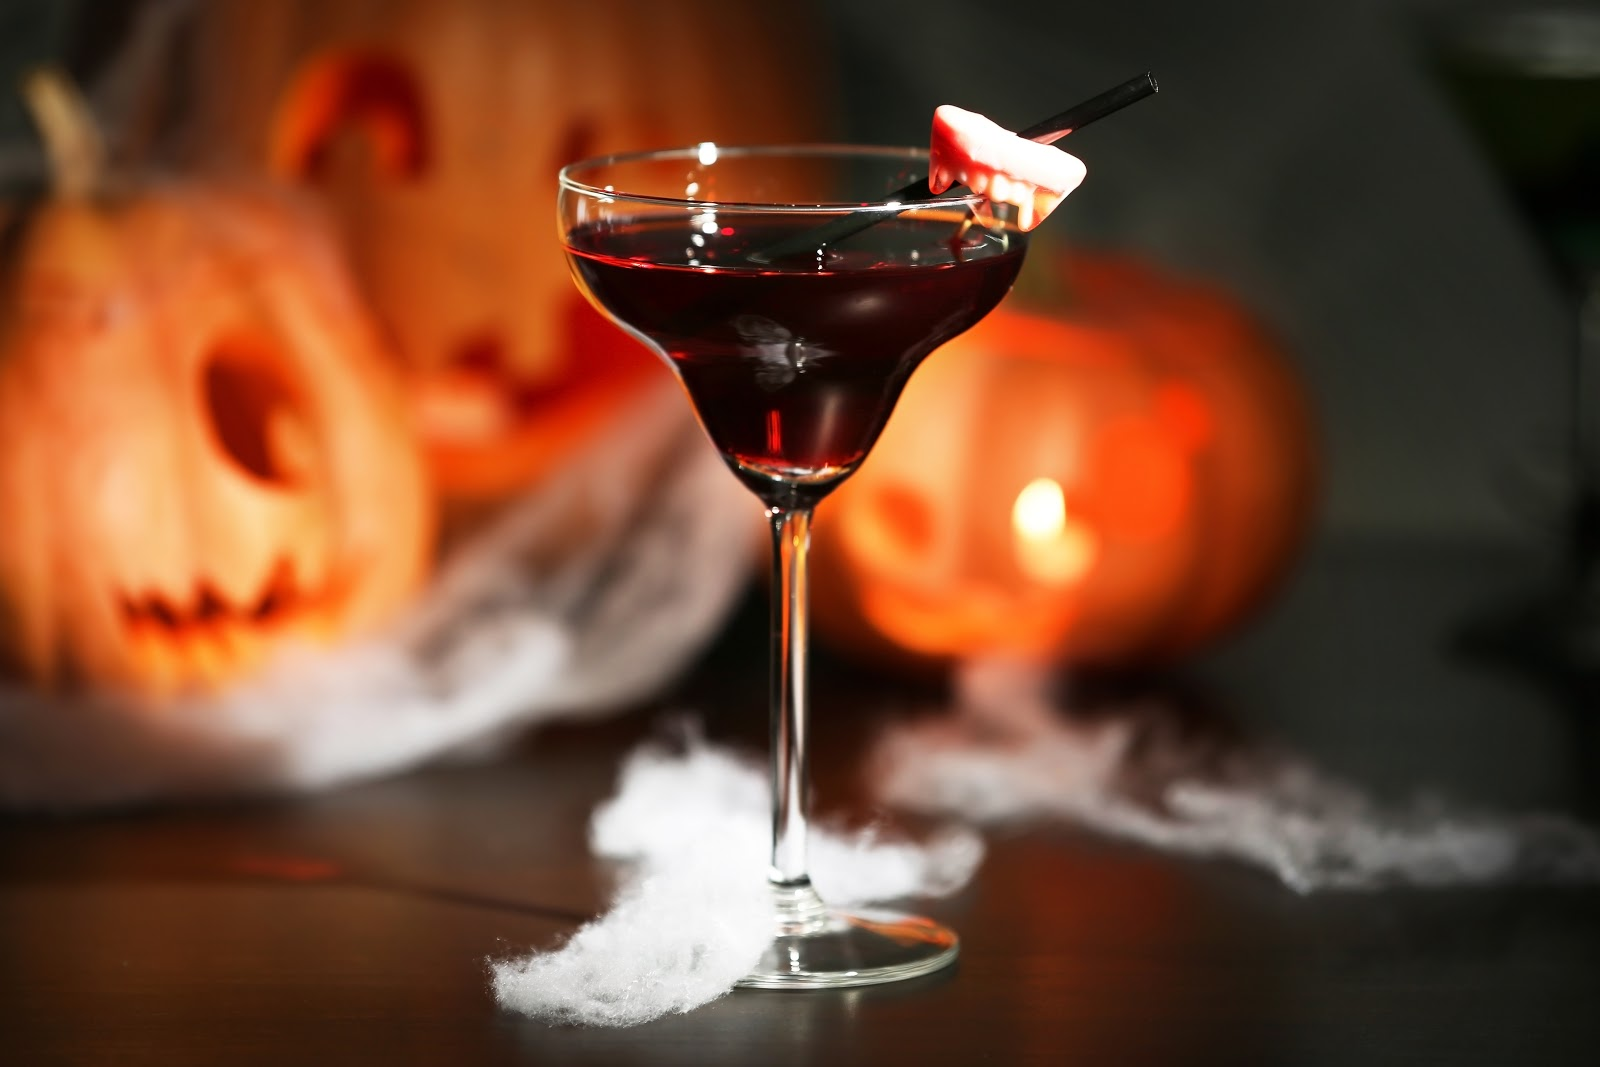 This themed cocktail is one of many Halloween party ideas.